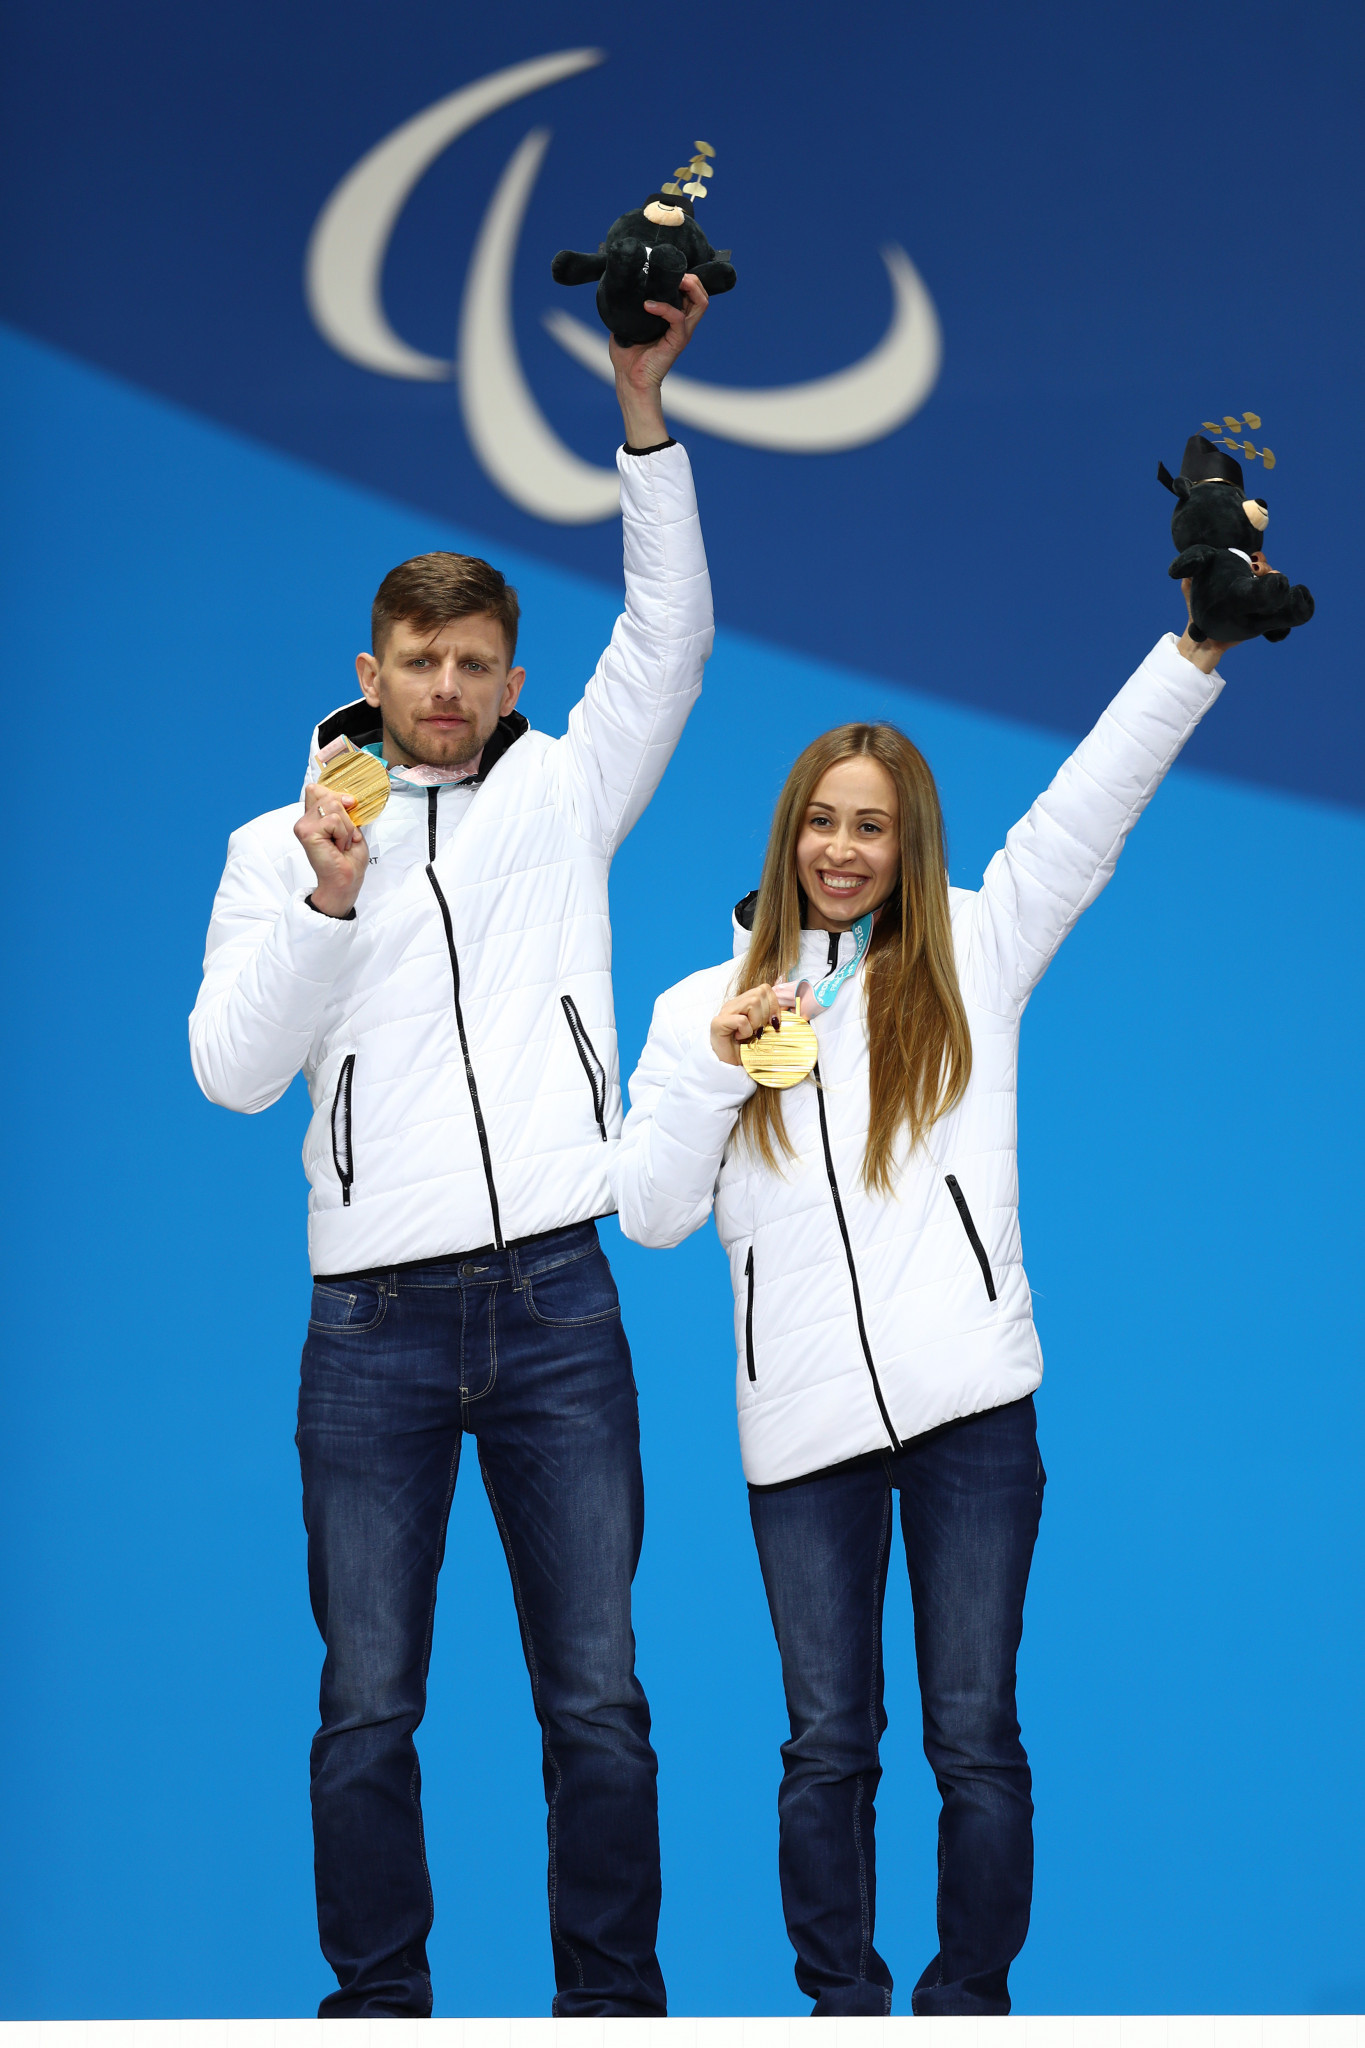 Mikhalina Lysova, right, and her guide Alexey Ivanov, left, won five medals at Pyeongchang 2018 ©Getty Images